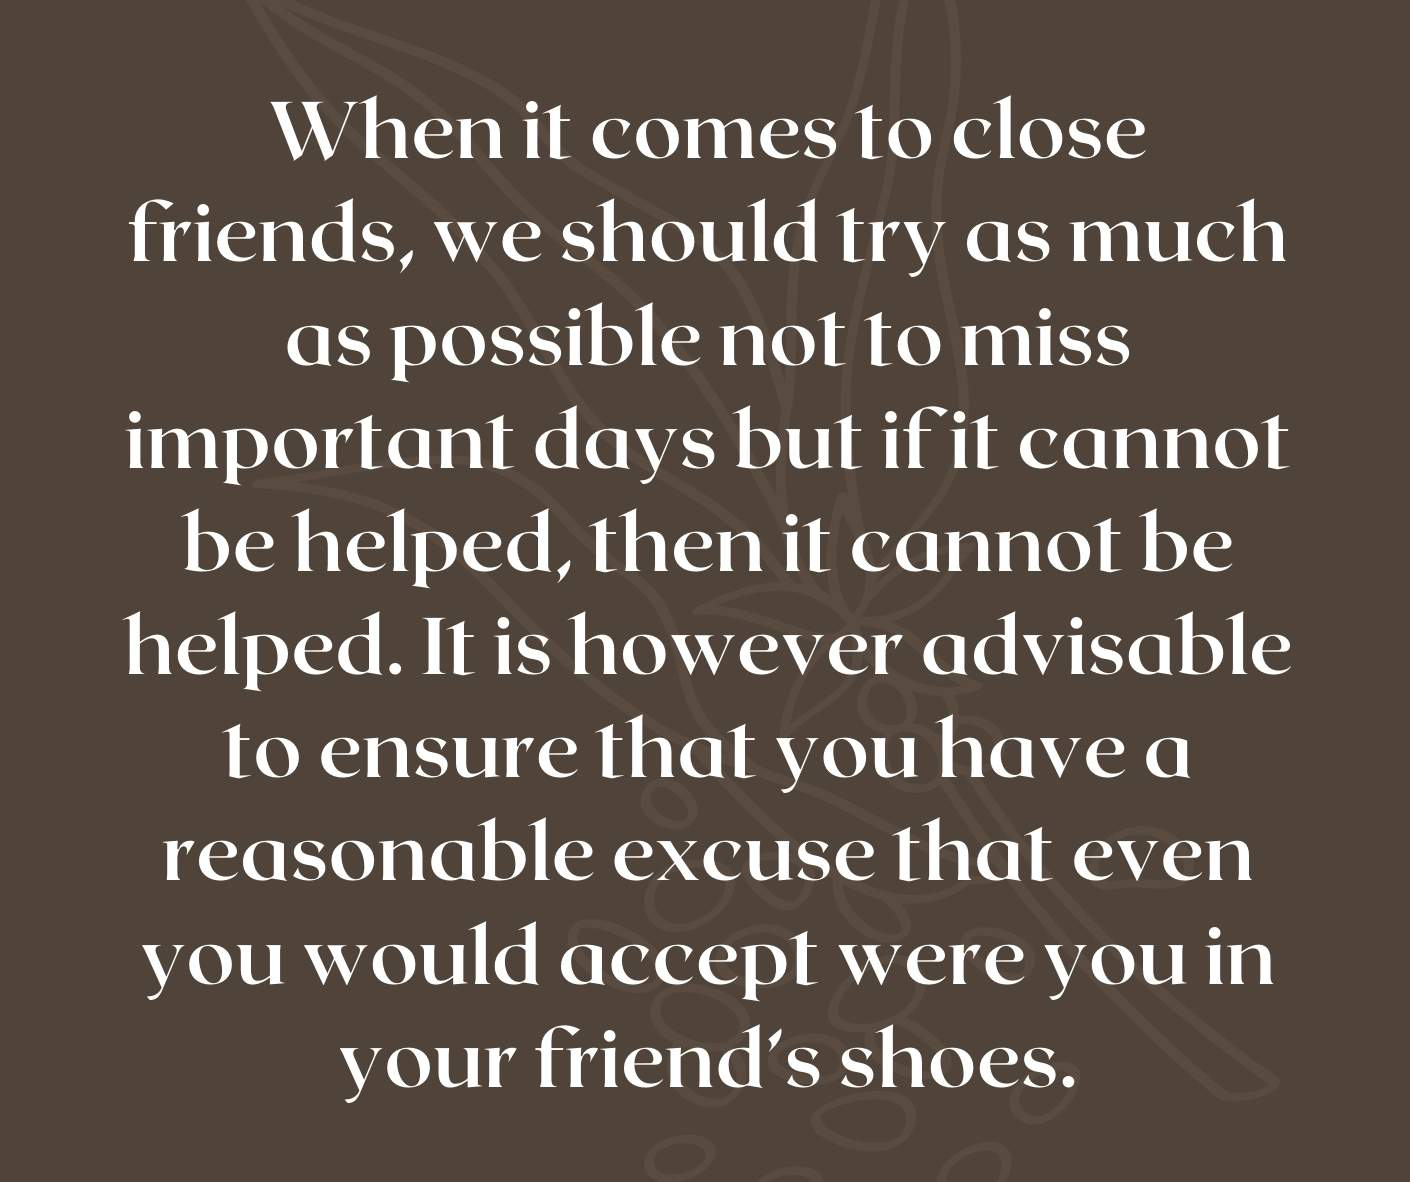 When it comes to close friends, we should try as much as possible not to miss important days but if it cannot be helped, then it cannot be helped. It is however advisable to ensure that you have a reasonable excuse that even you would accept were you in your friend's shoes.